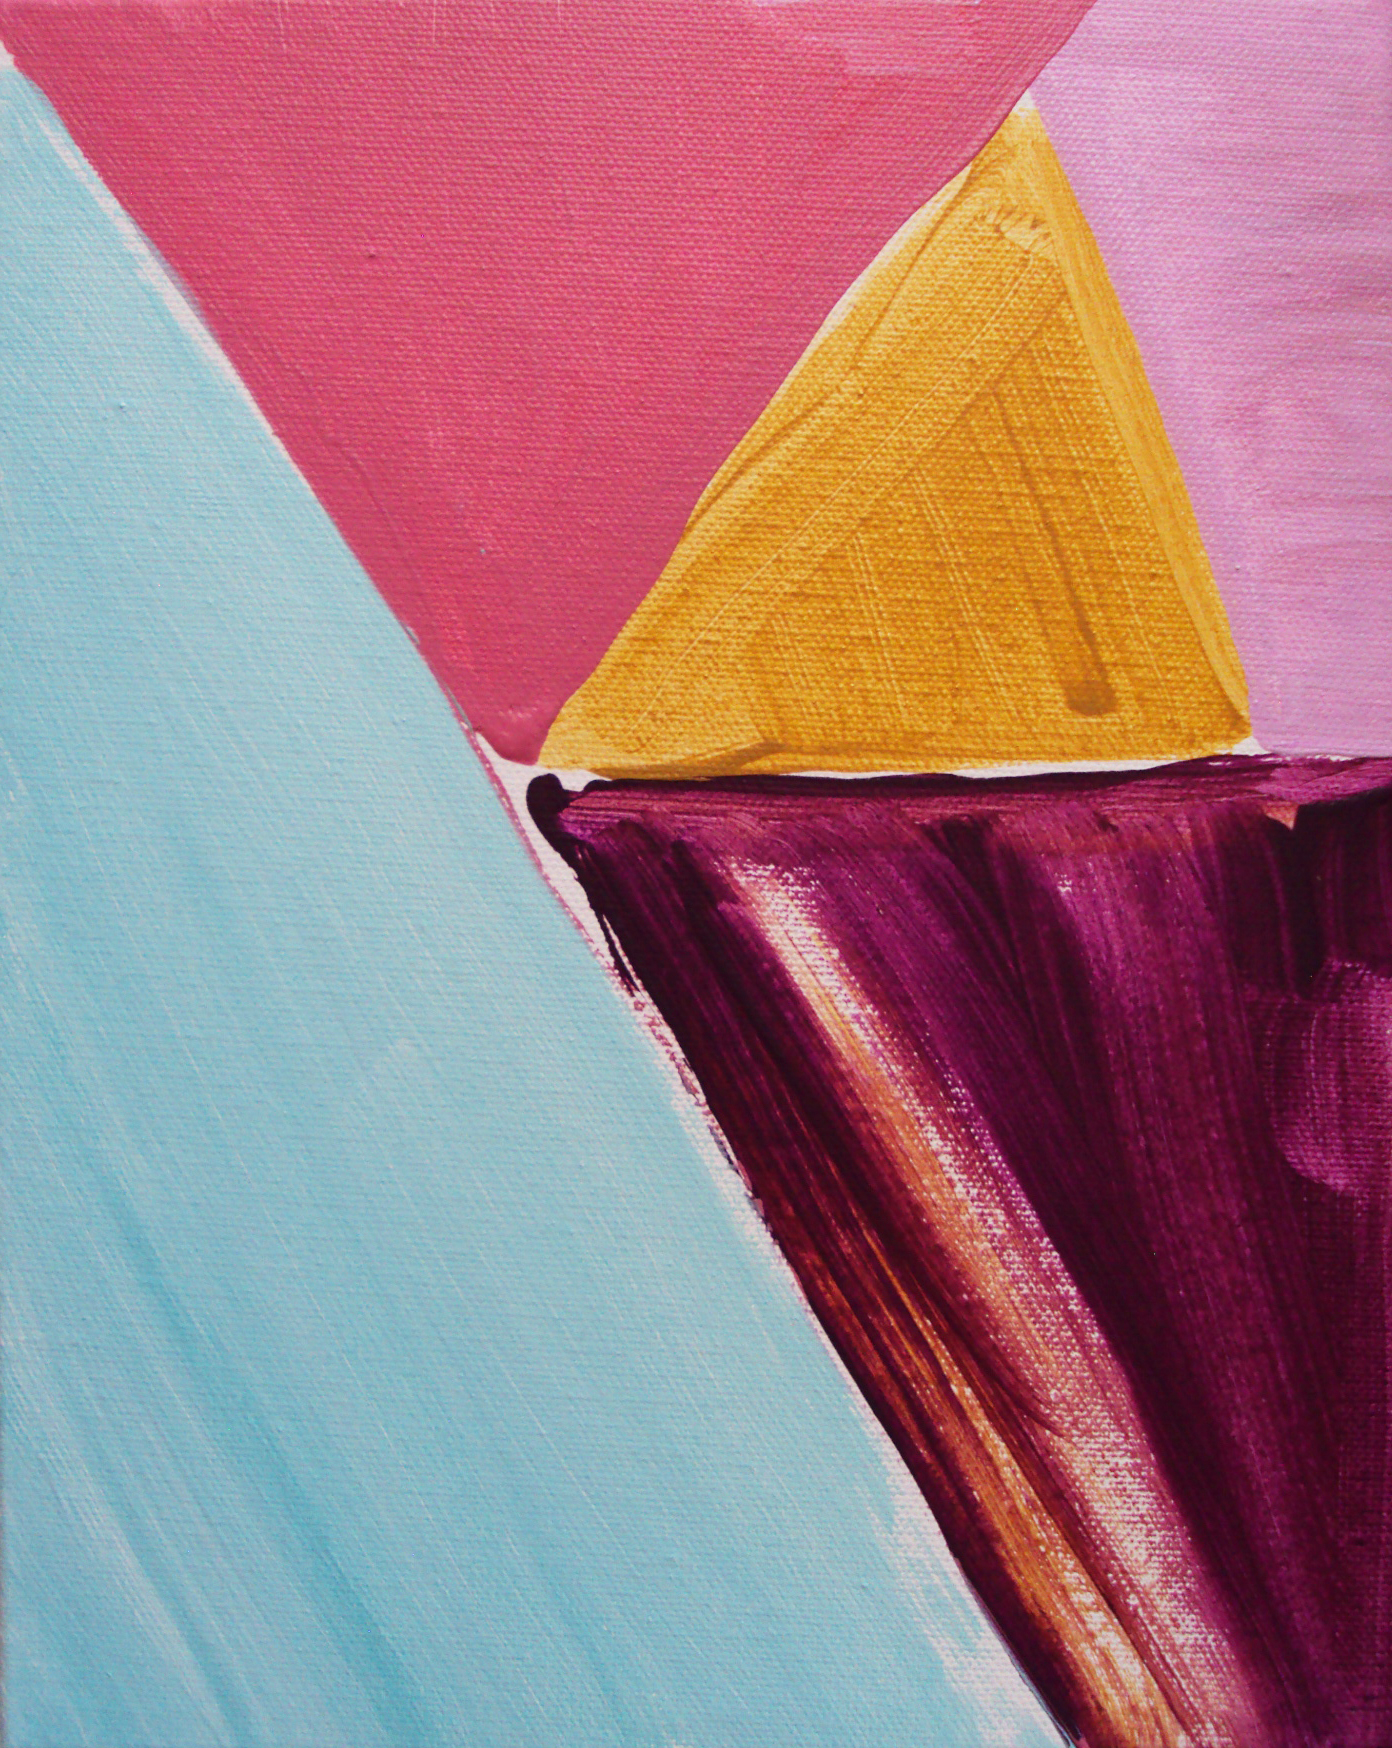 Golden Triangle Pink (2013)